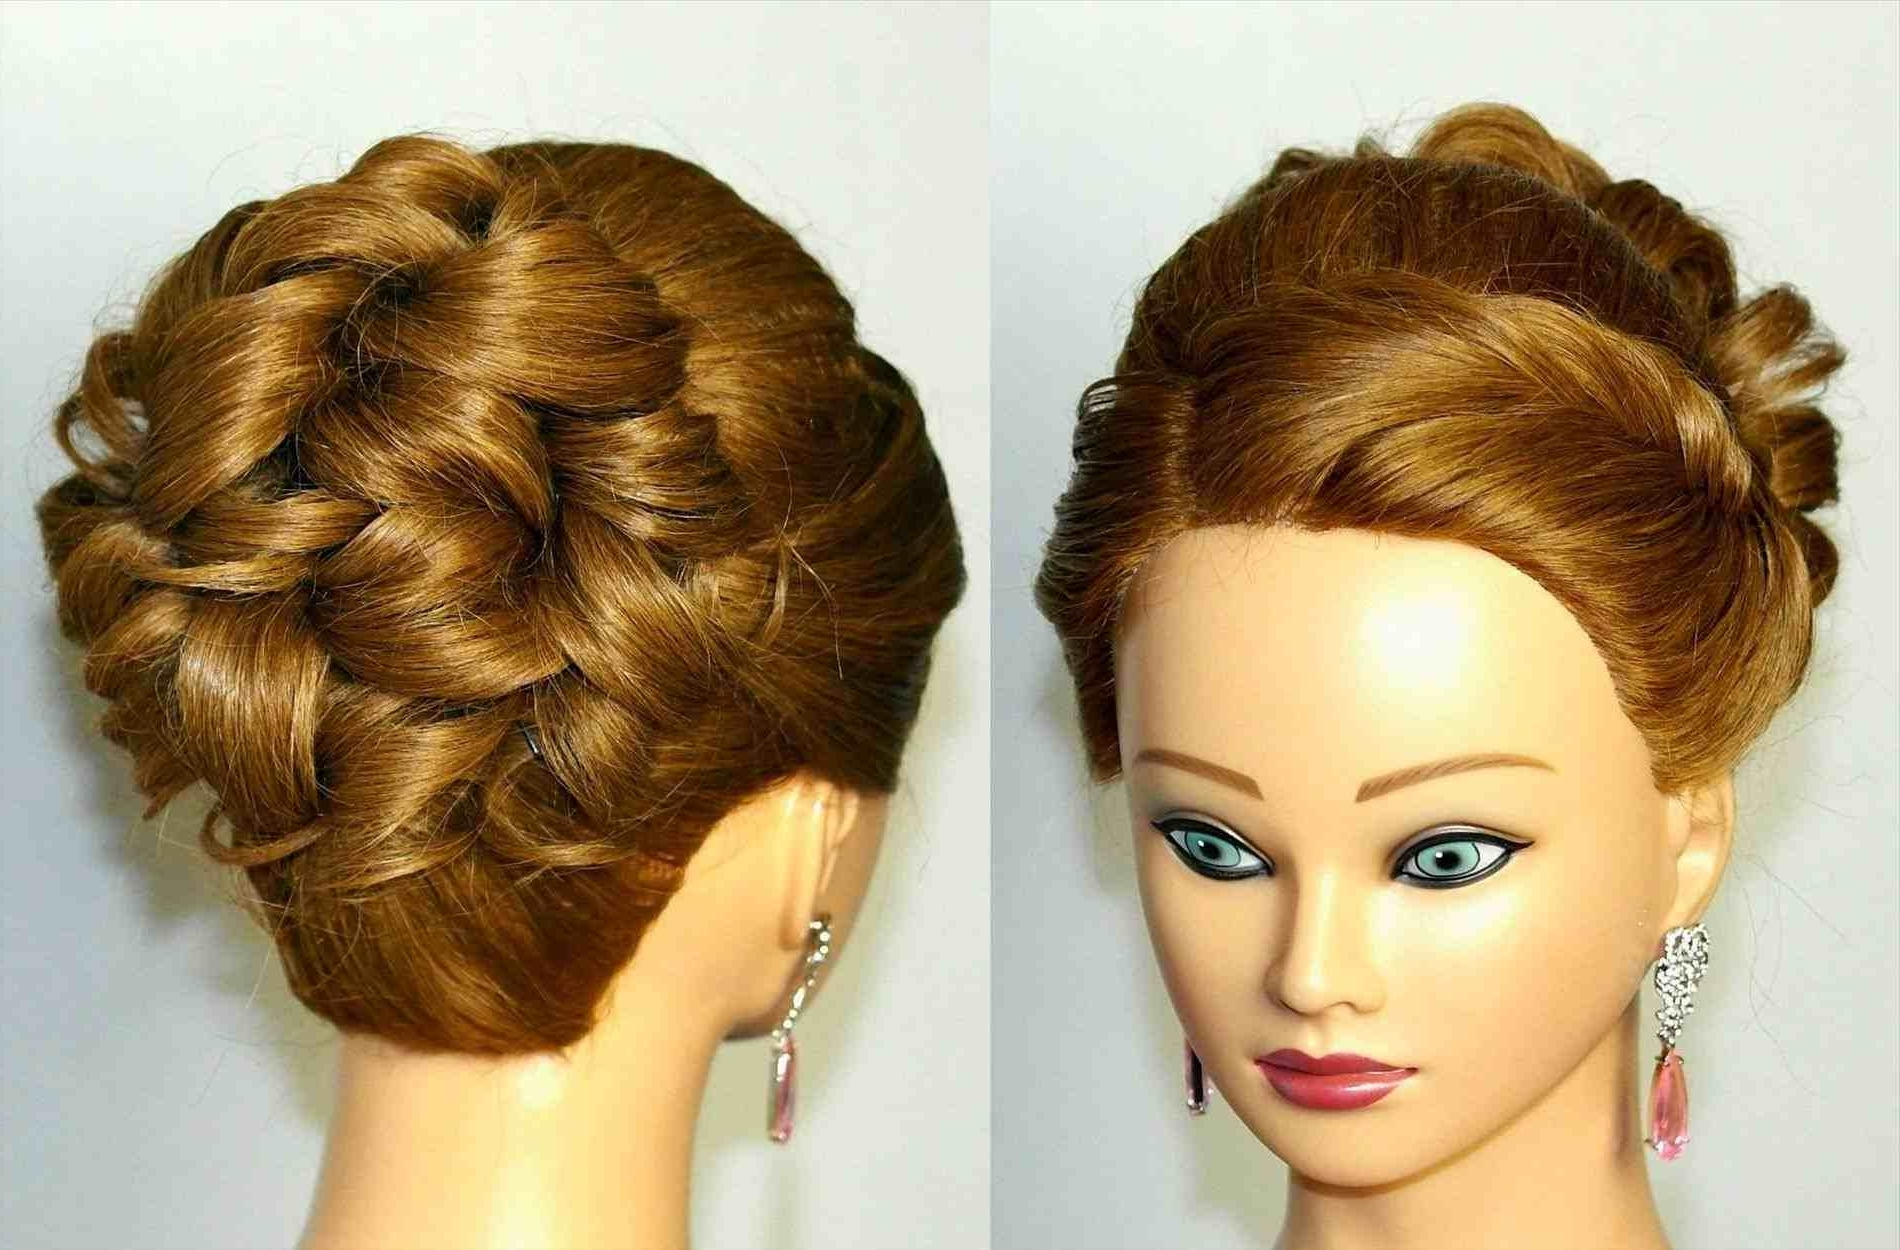 Incredible Easy Hair For Medium Length Curly Updo Pic Of And Style Regarding Updos For Medium Length Curly Hair (View 10 of 15)